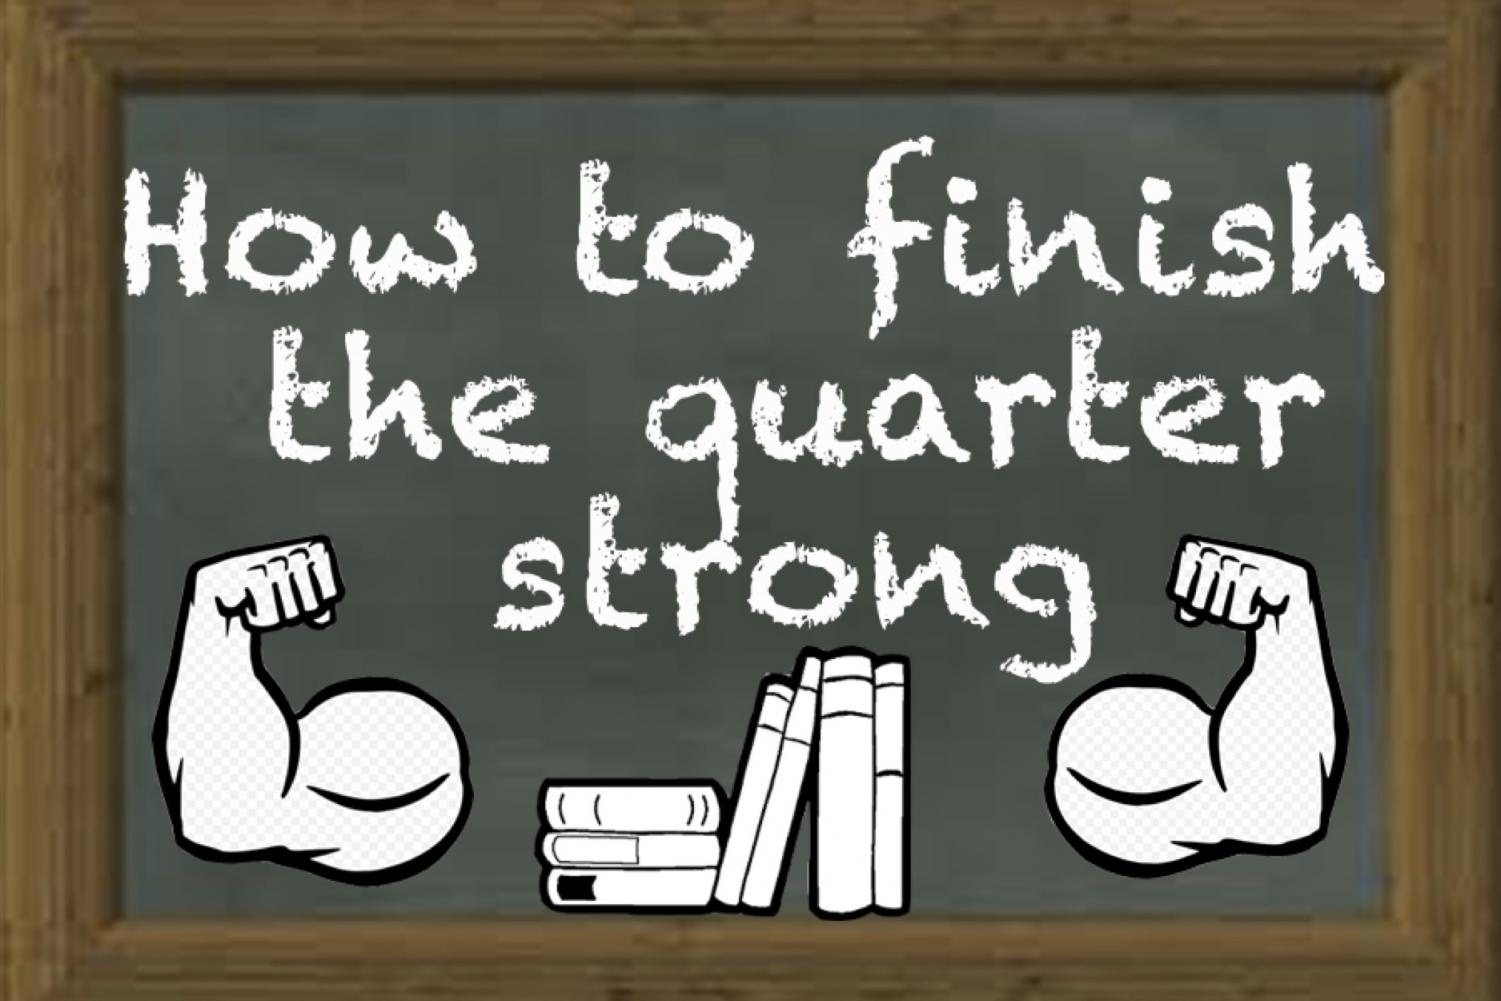 With the quarter coming to an end, it is important to stay on top of your work and finish strong!